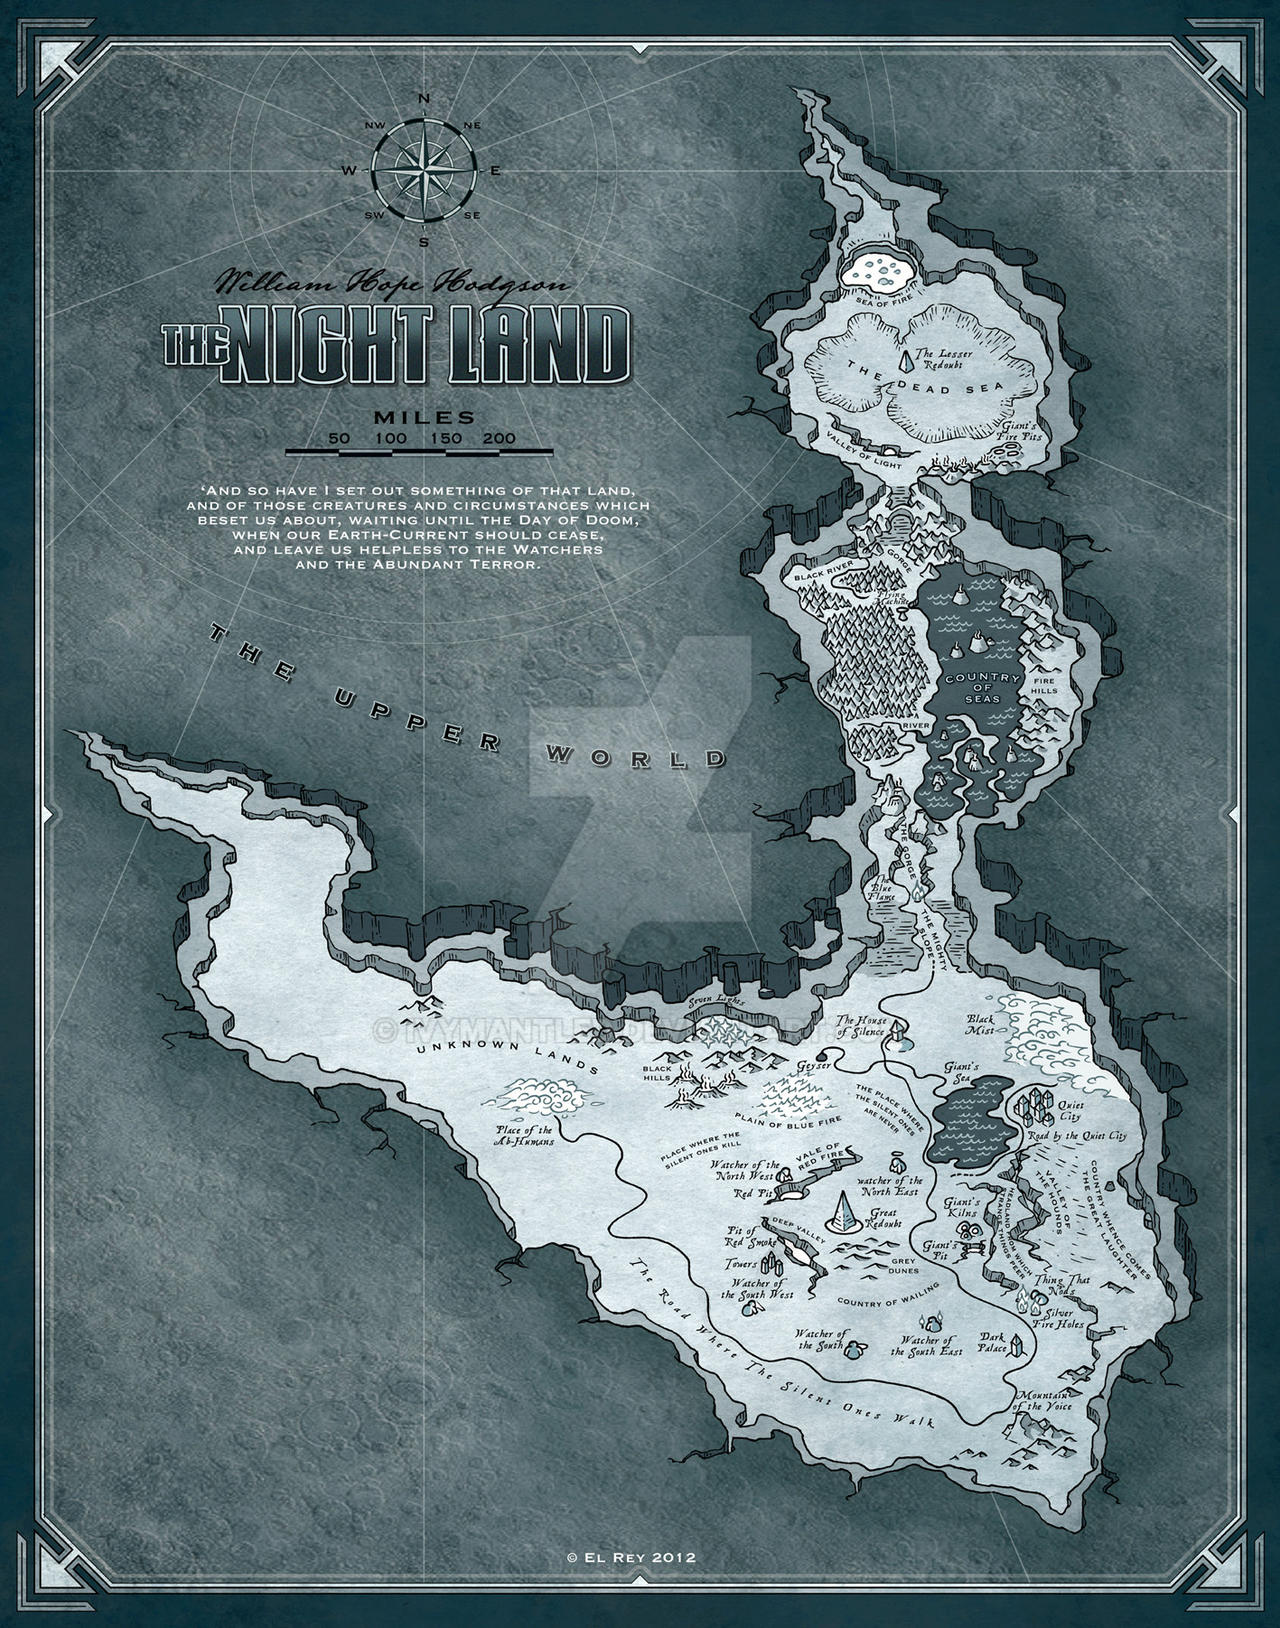 [Image: the_night_land_map_by_ivymantled-d4vfvqy.jpg]